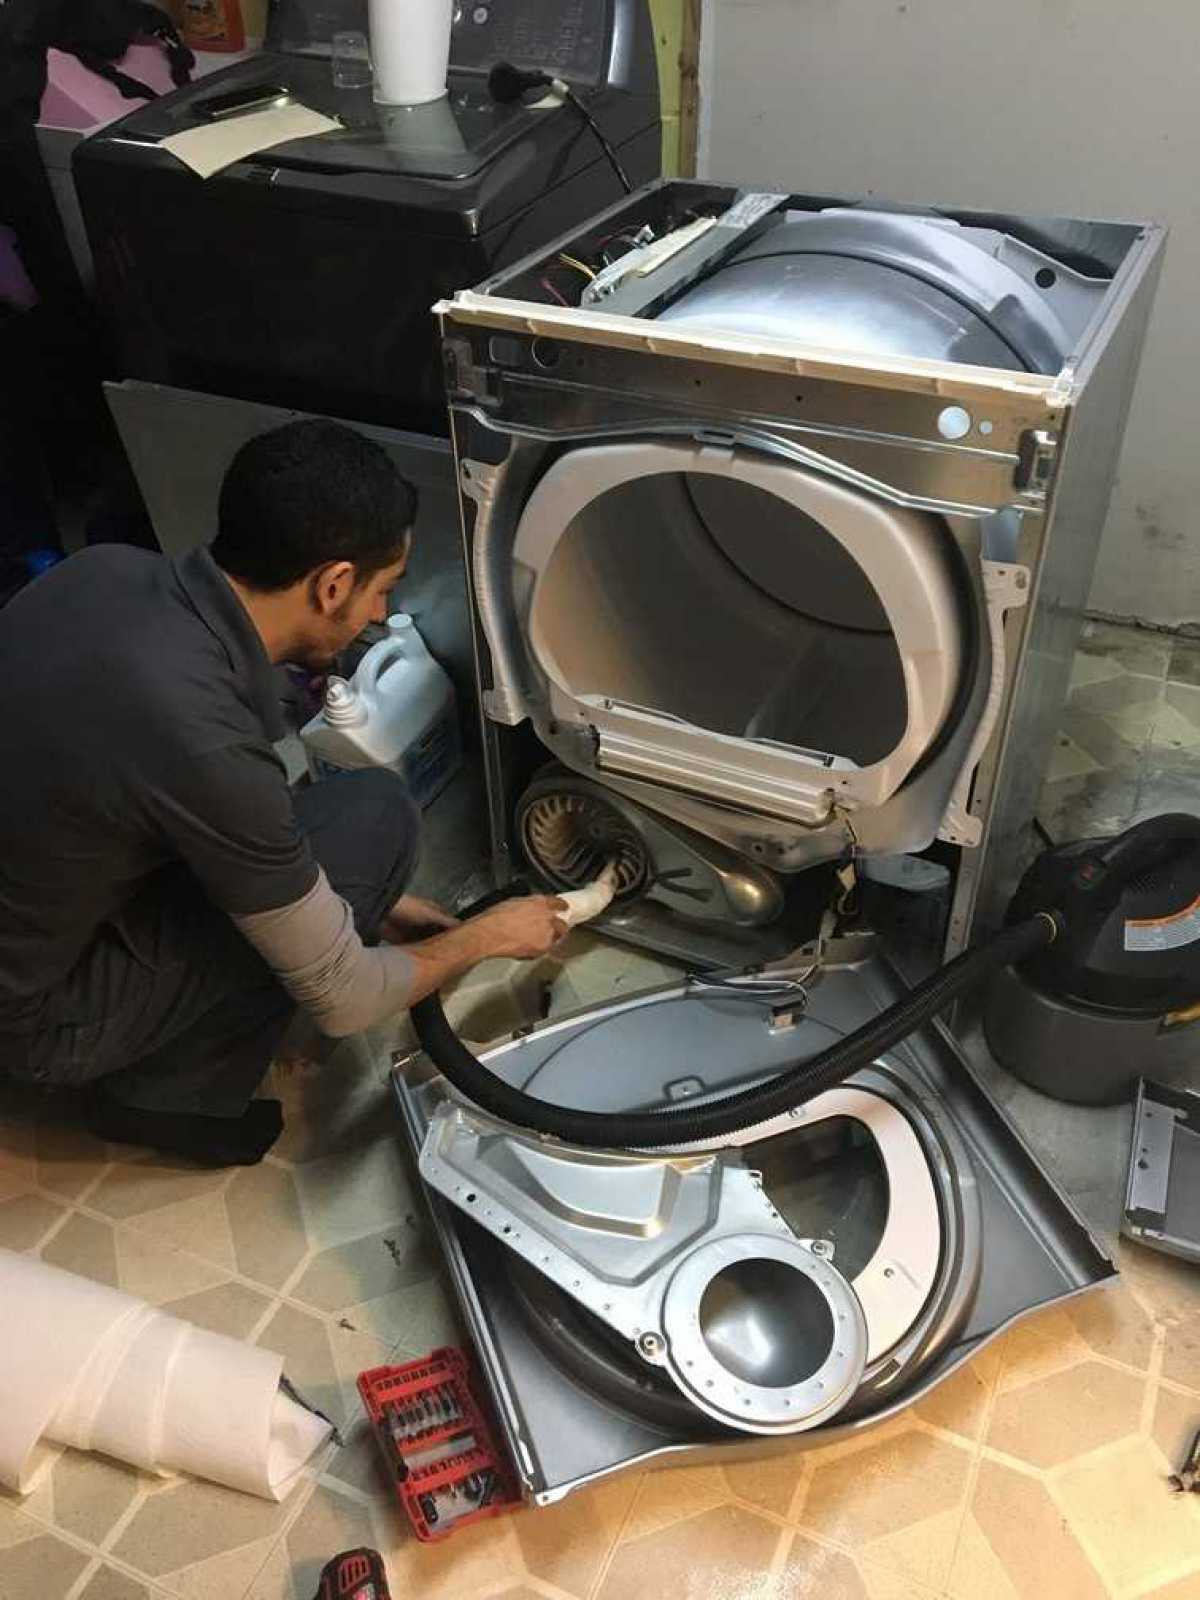 Cleaning Dryer Lint Hire Professionals I Fix Appliance Repair - Dryer Lint Cleaner